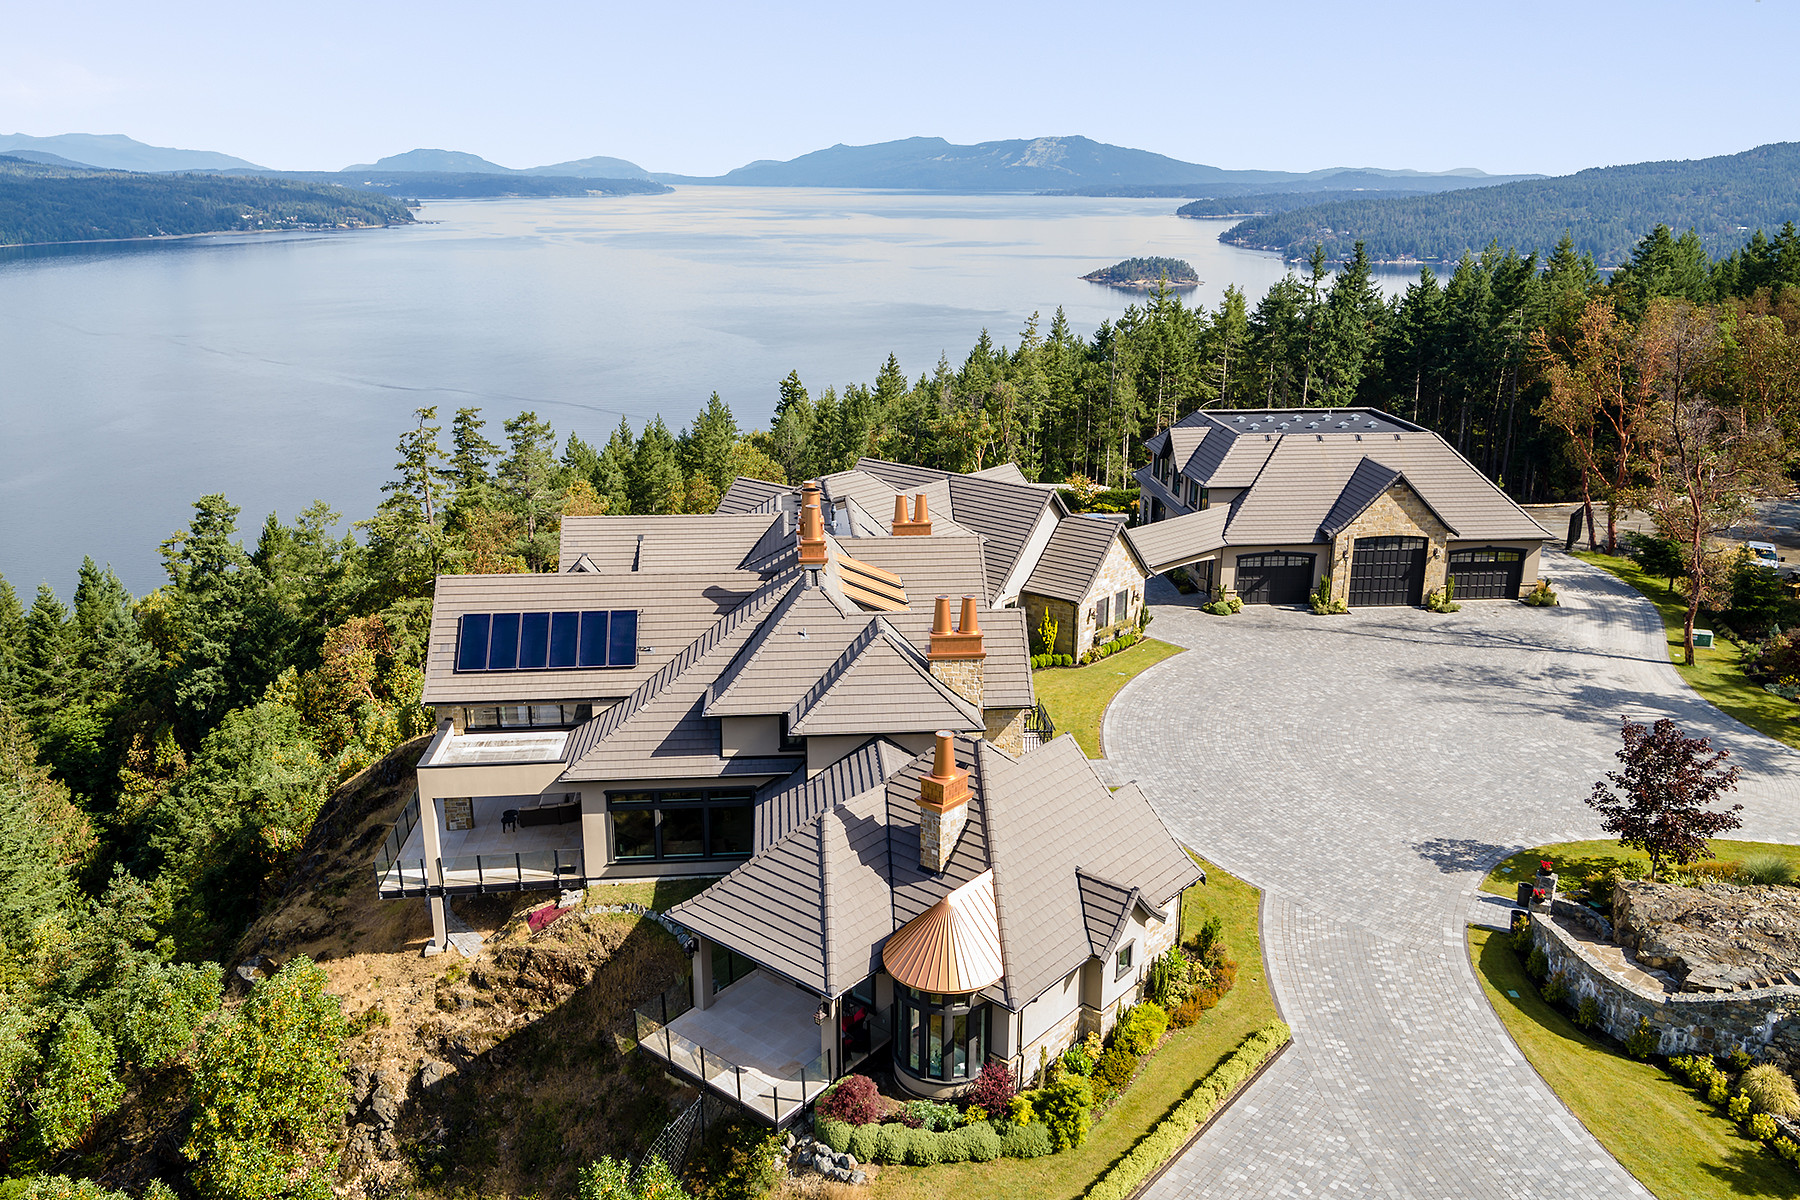 Single Family Homes for Sale at The View At Willis Point 6720 Willis Point Rd Victoria, British Columbia V9E 2A2 Canada